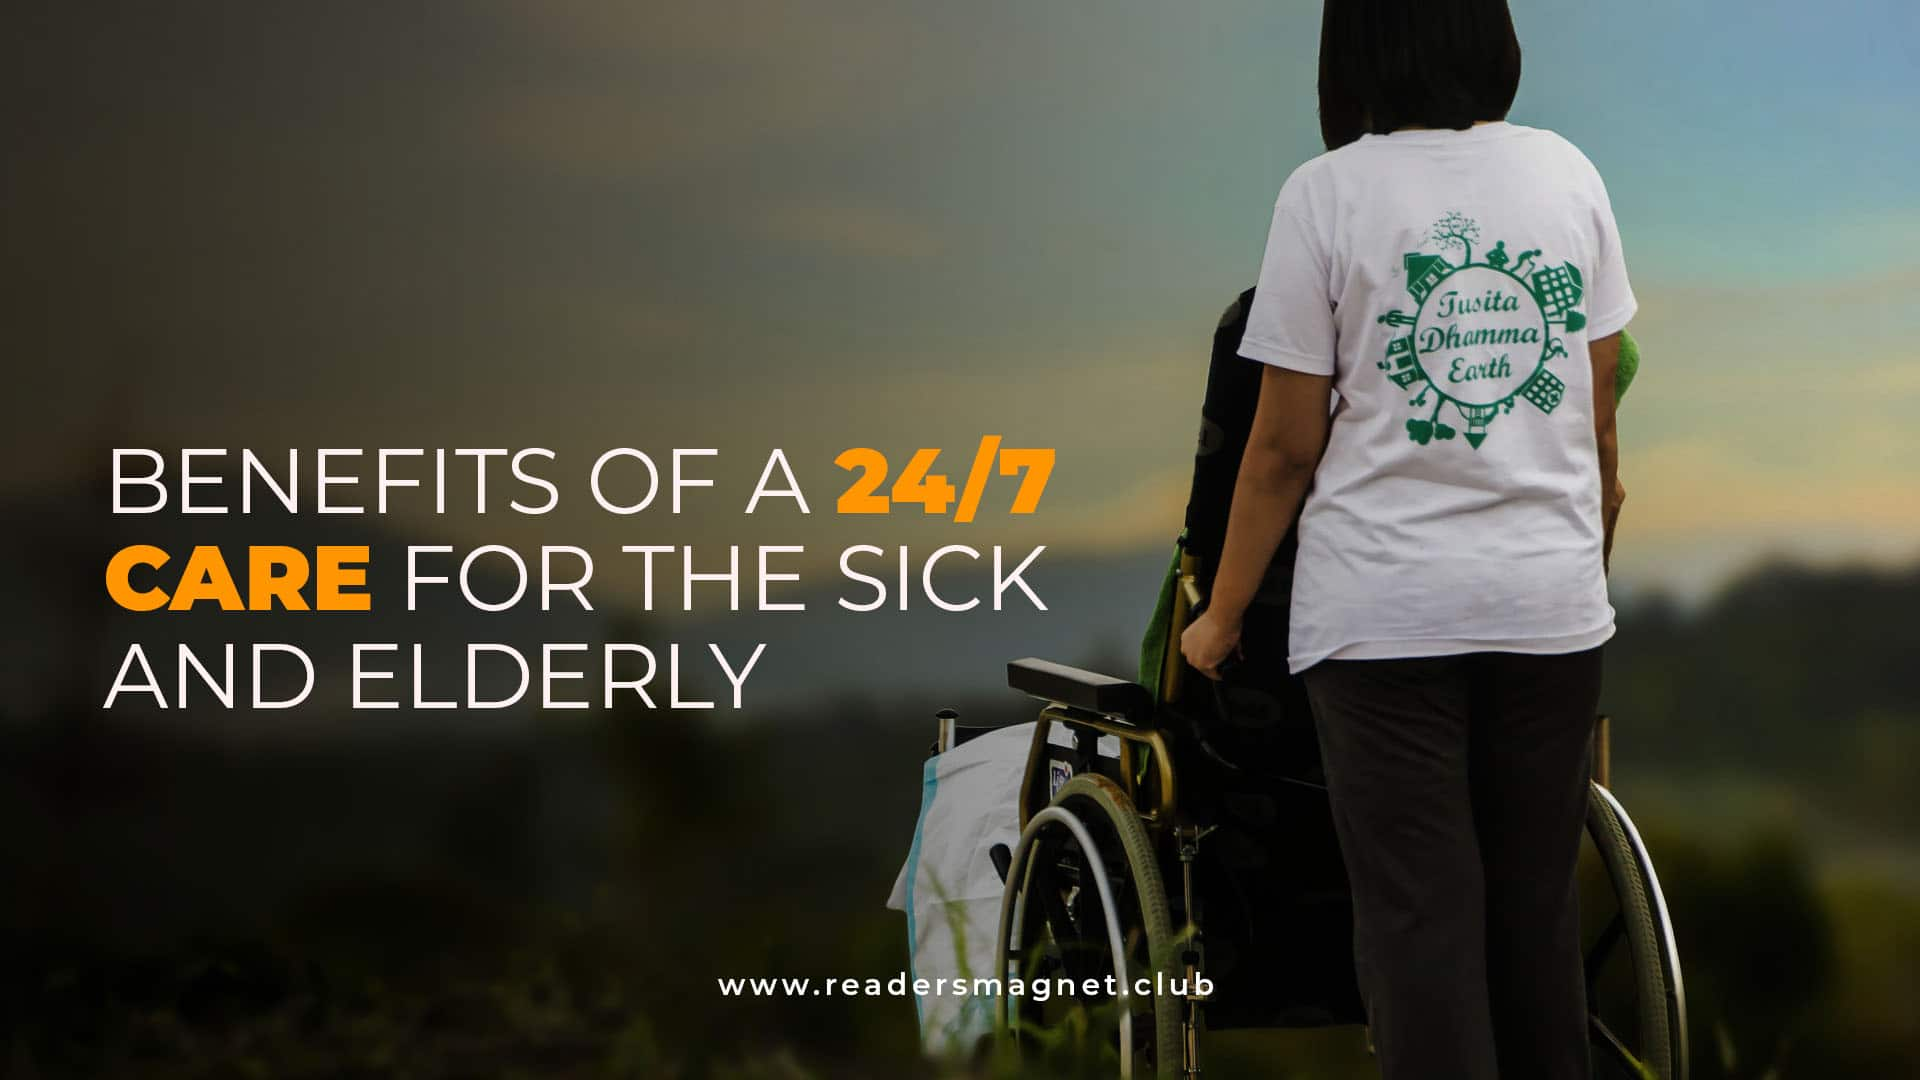 Benefits of a 24-7 Care for the Sick and Elderly banner